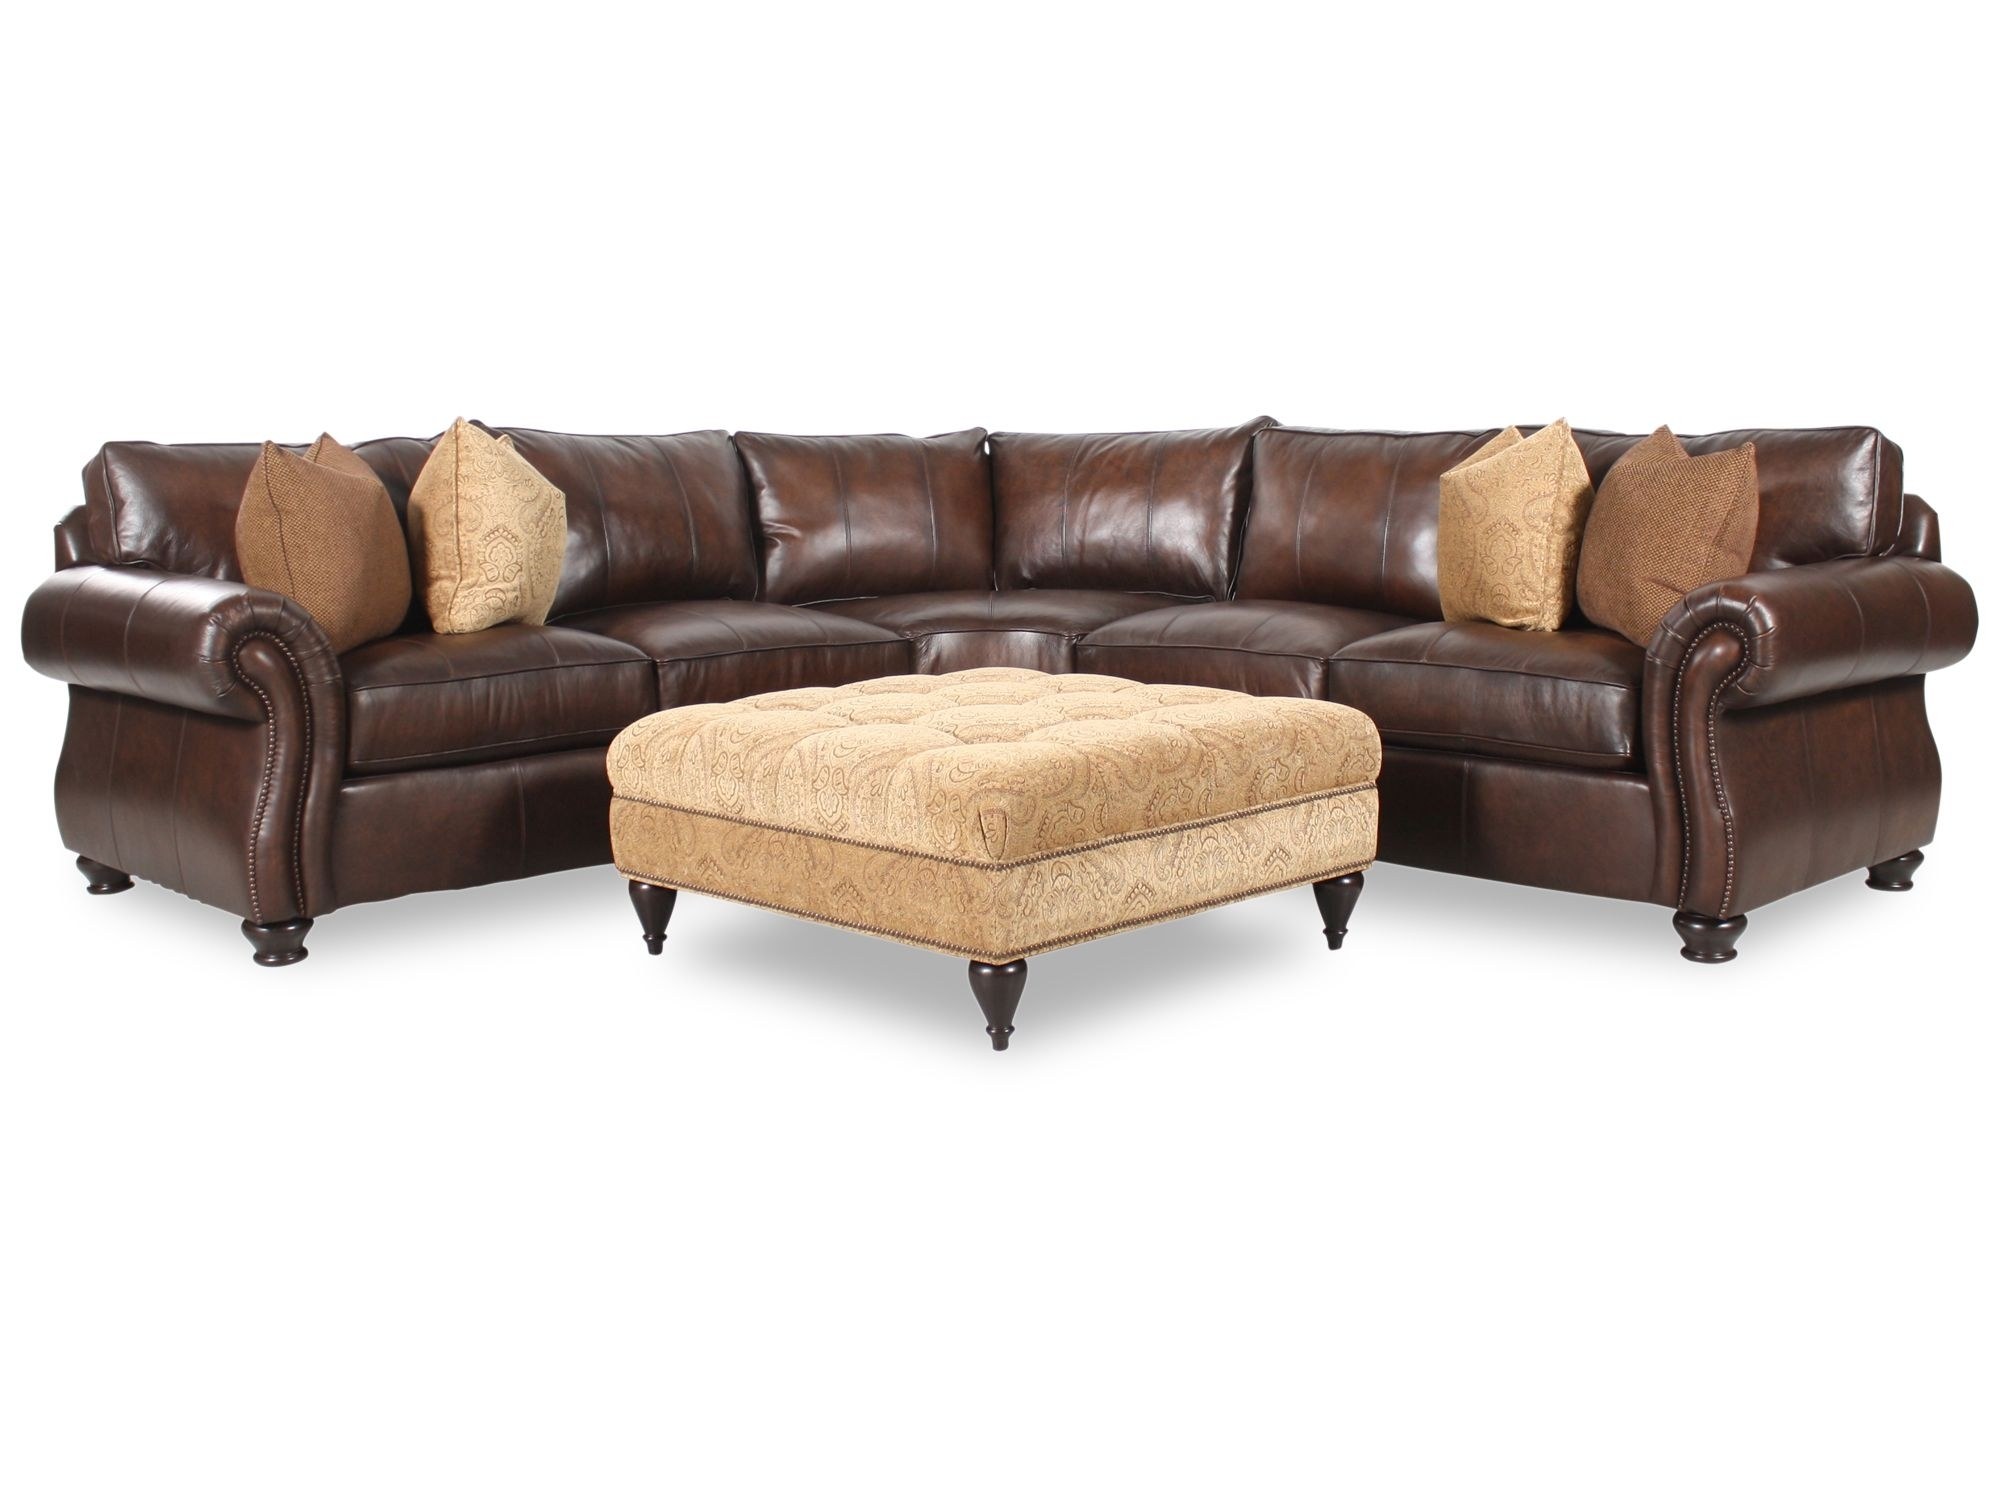 Furniture : Brown Leather Couch In Living Room 2 Seater Red Leather With Oakville Sectional Sofas (View 10 of 10)